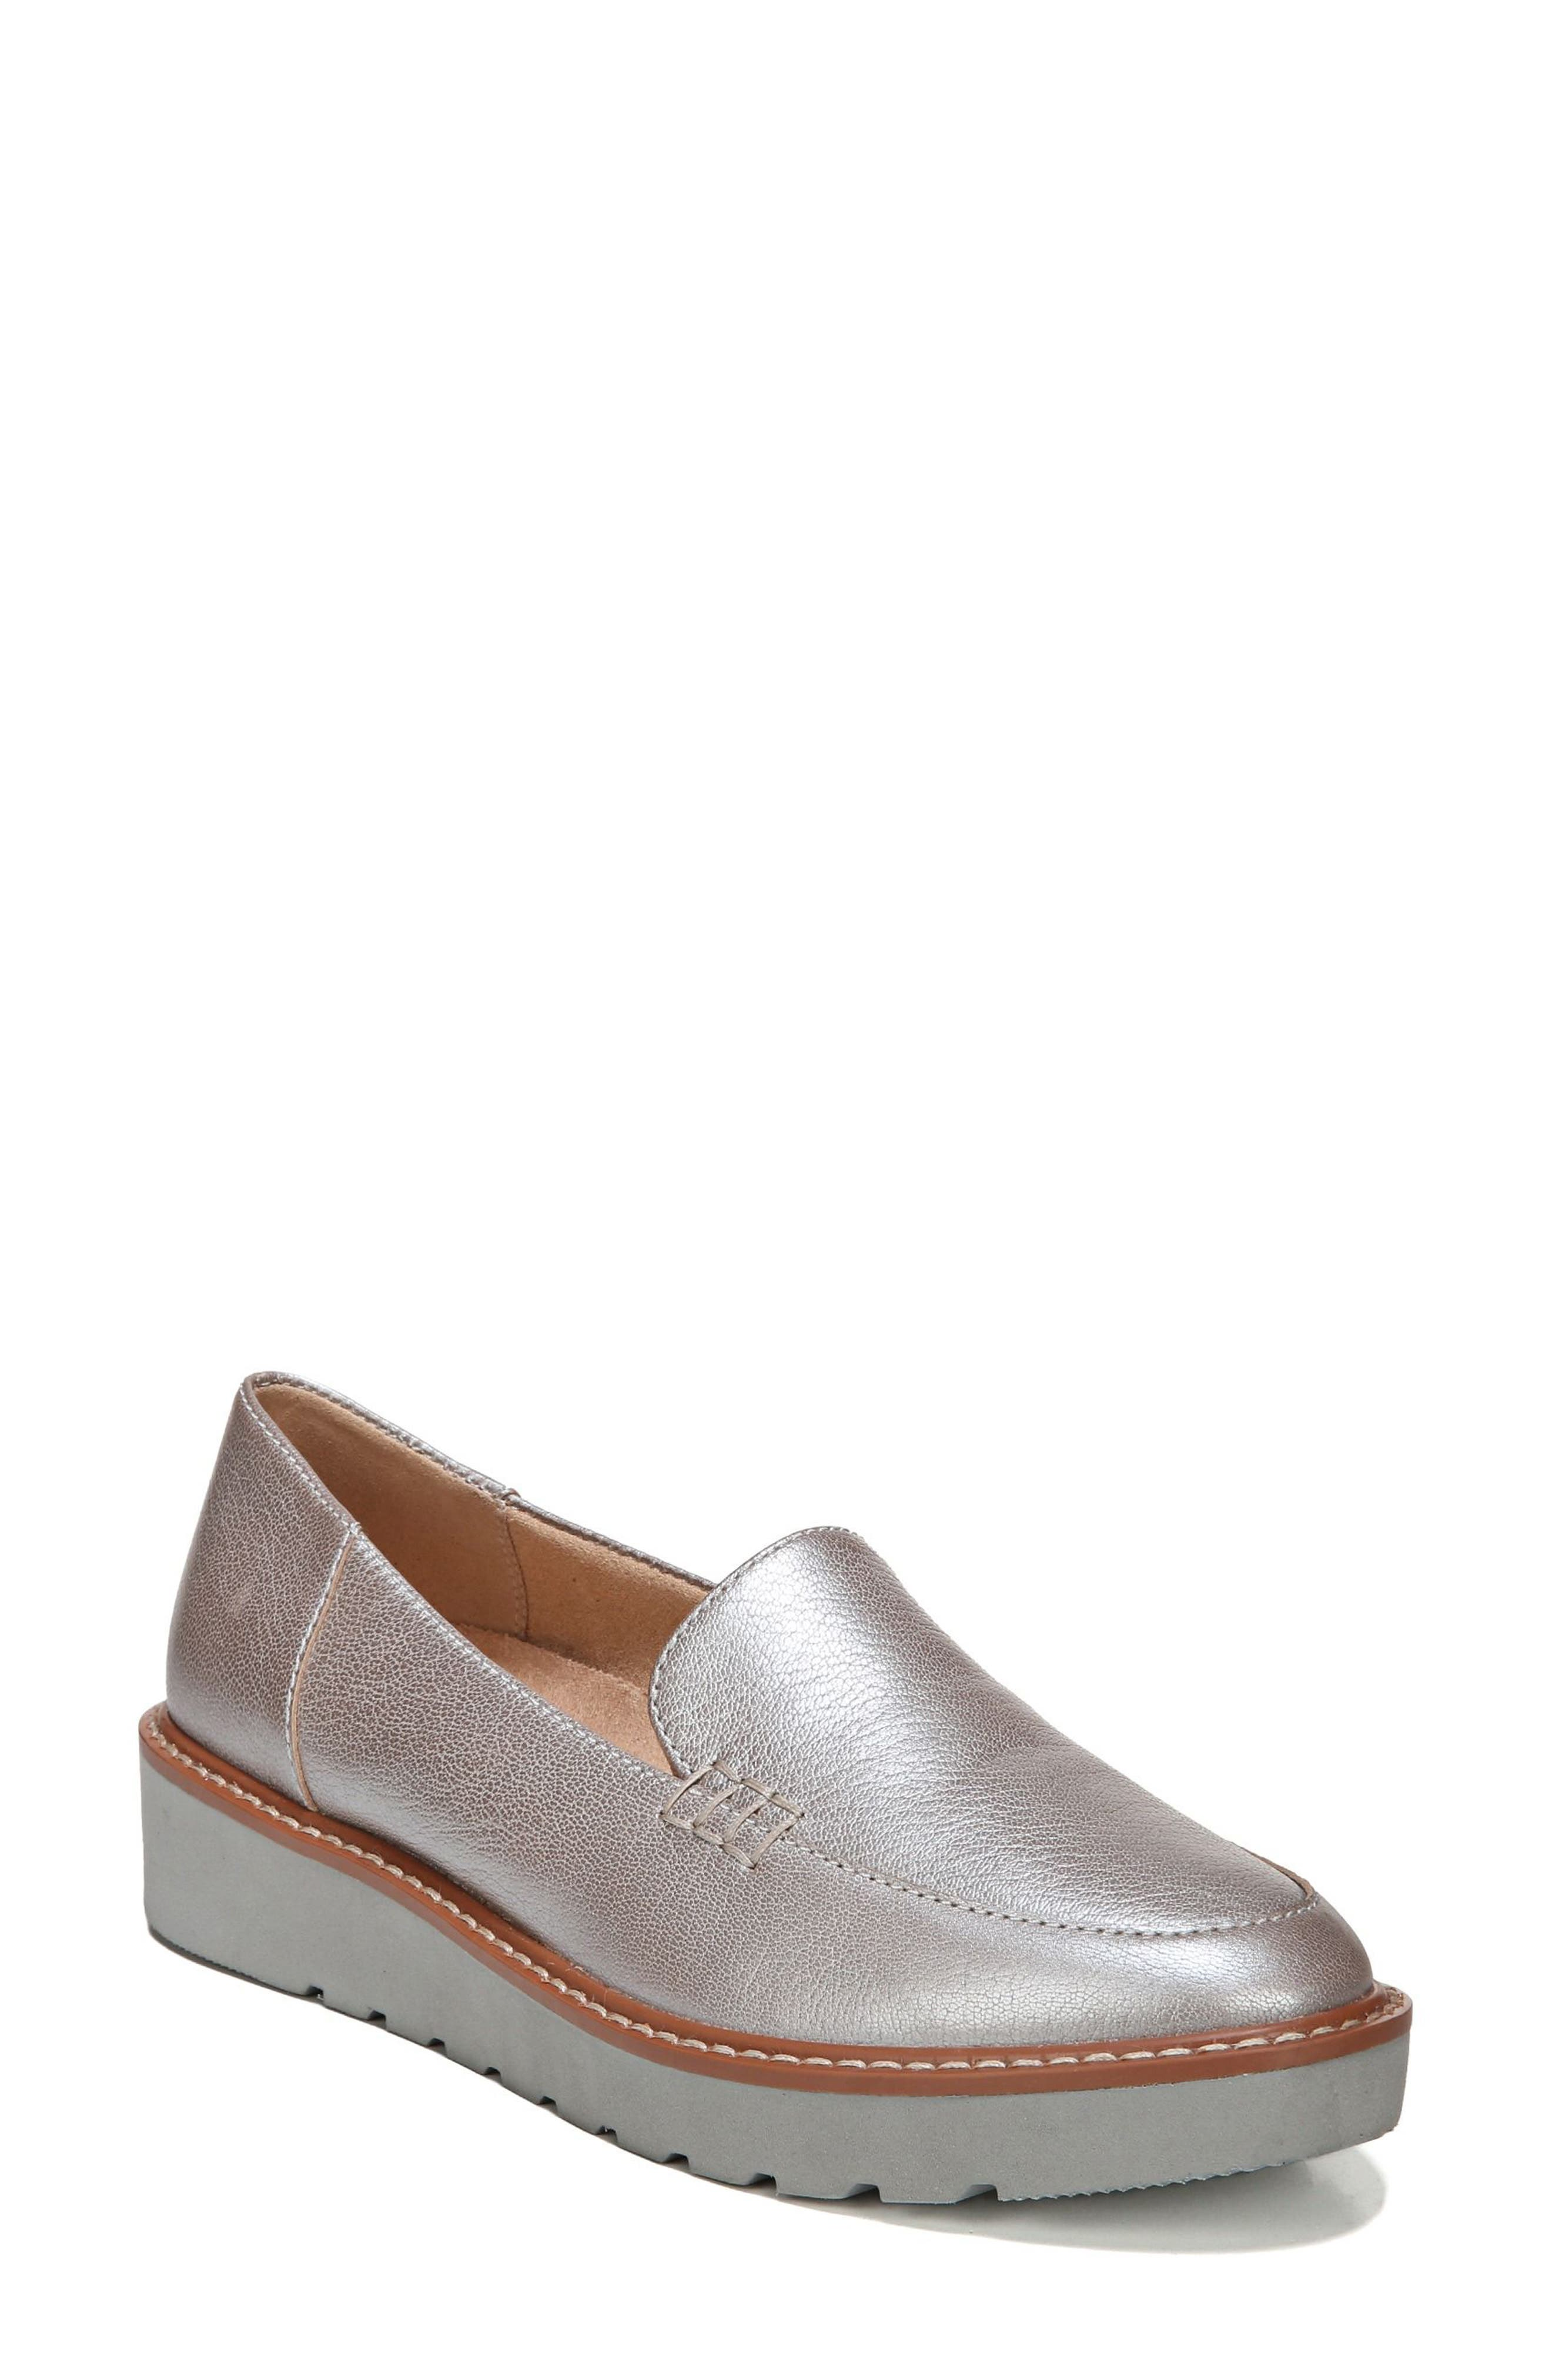 Andie Loafer,                             Main thumbnail 1, color,                             Silver Leather